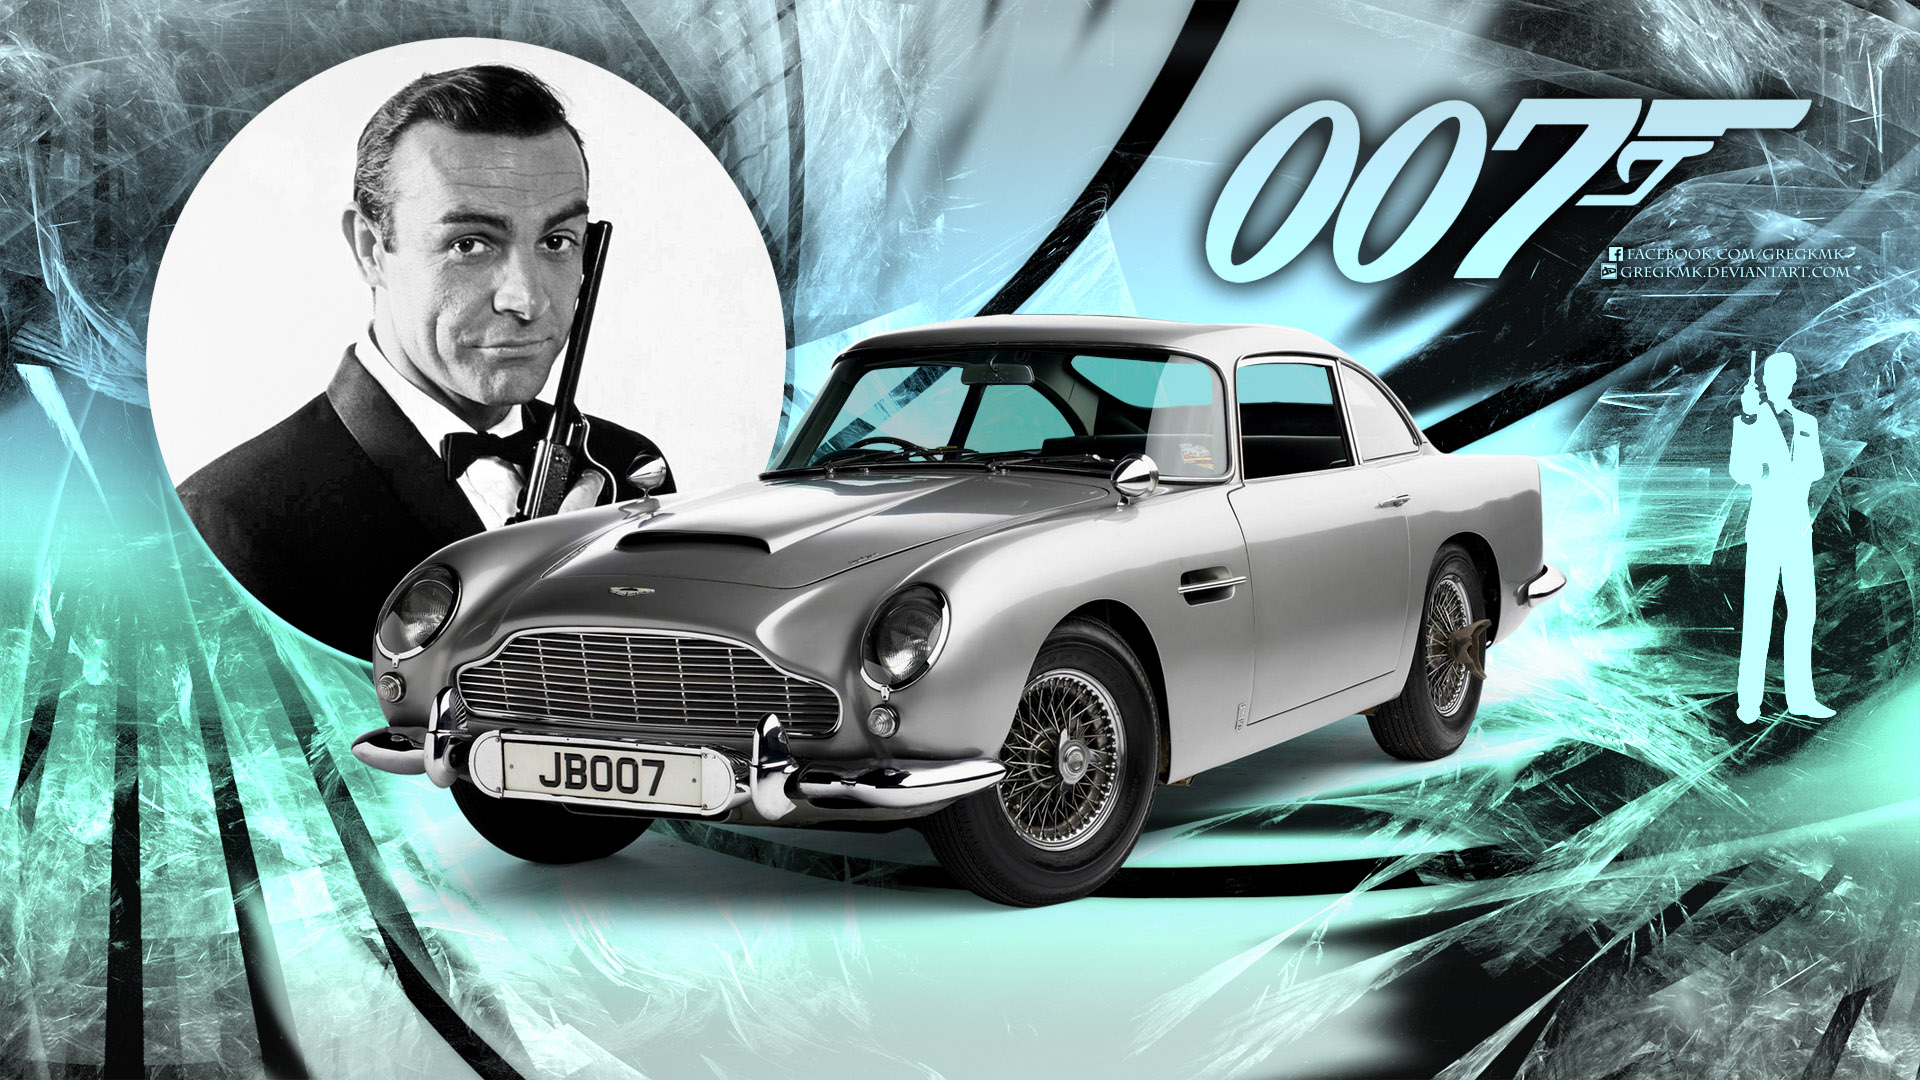 James Bond 007 Full HD Wallpaper and Background Image ...